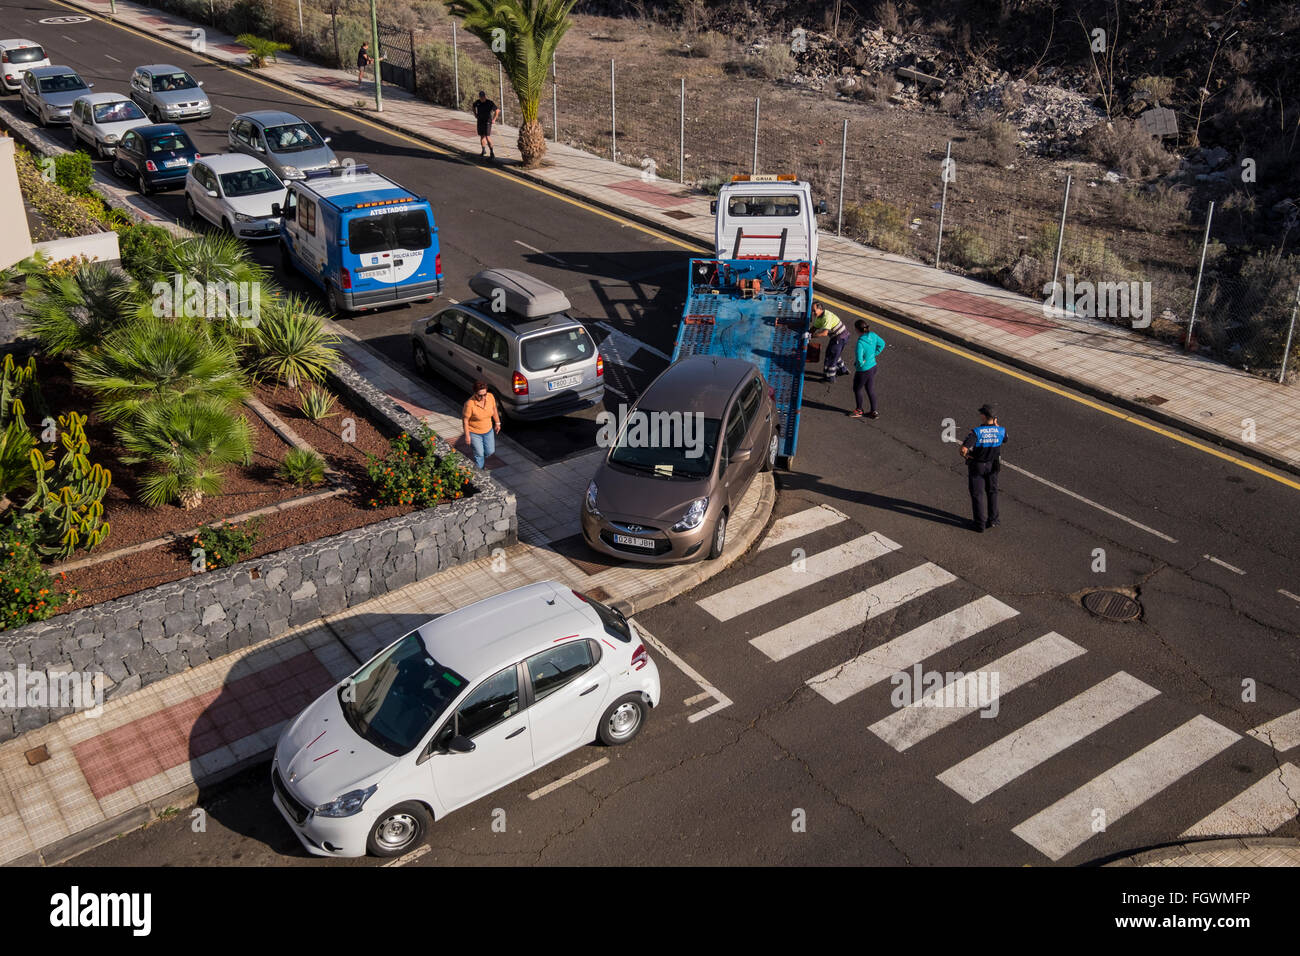 Illegally parked car being towed away. Playa San Juan, Tenerife, Canary Islands, Spain - Stock Image